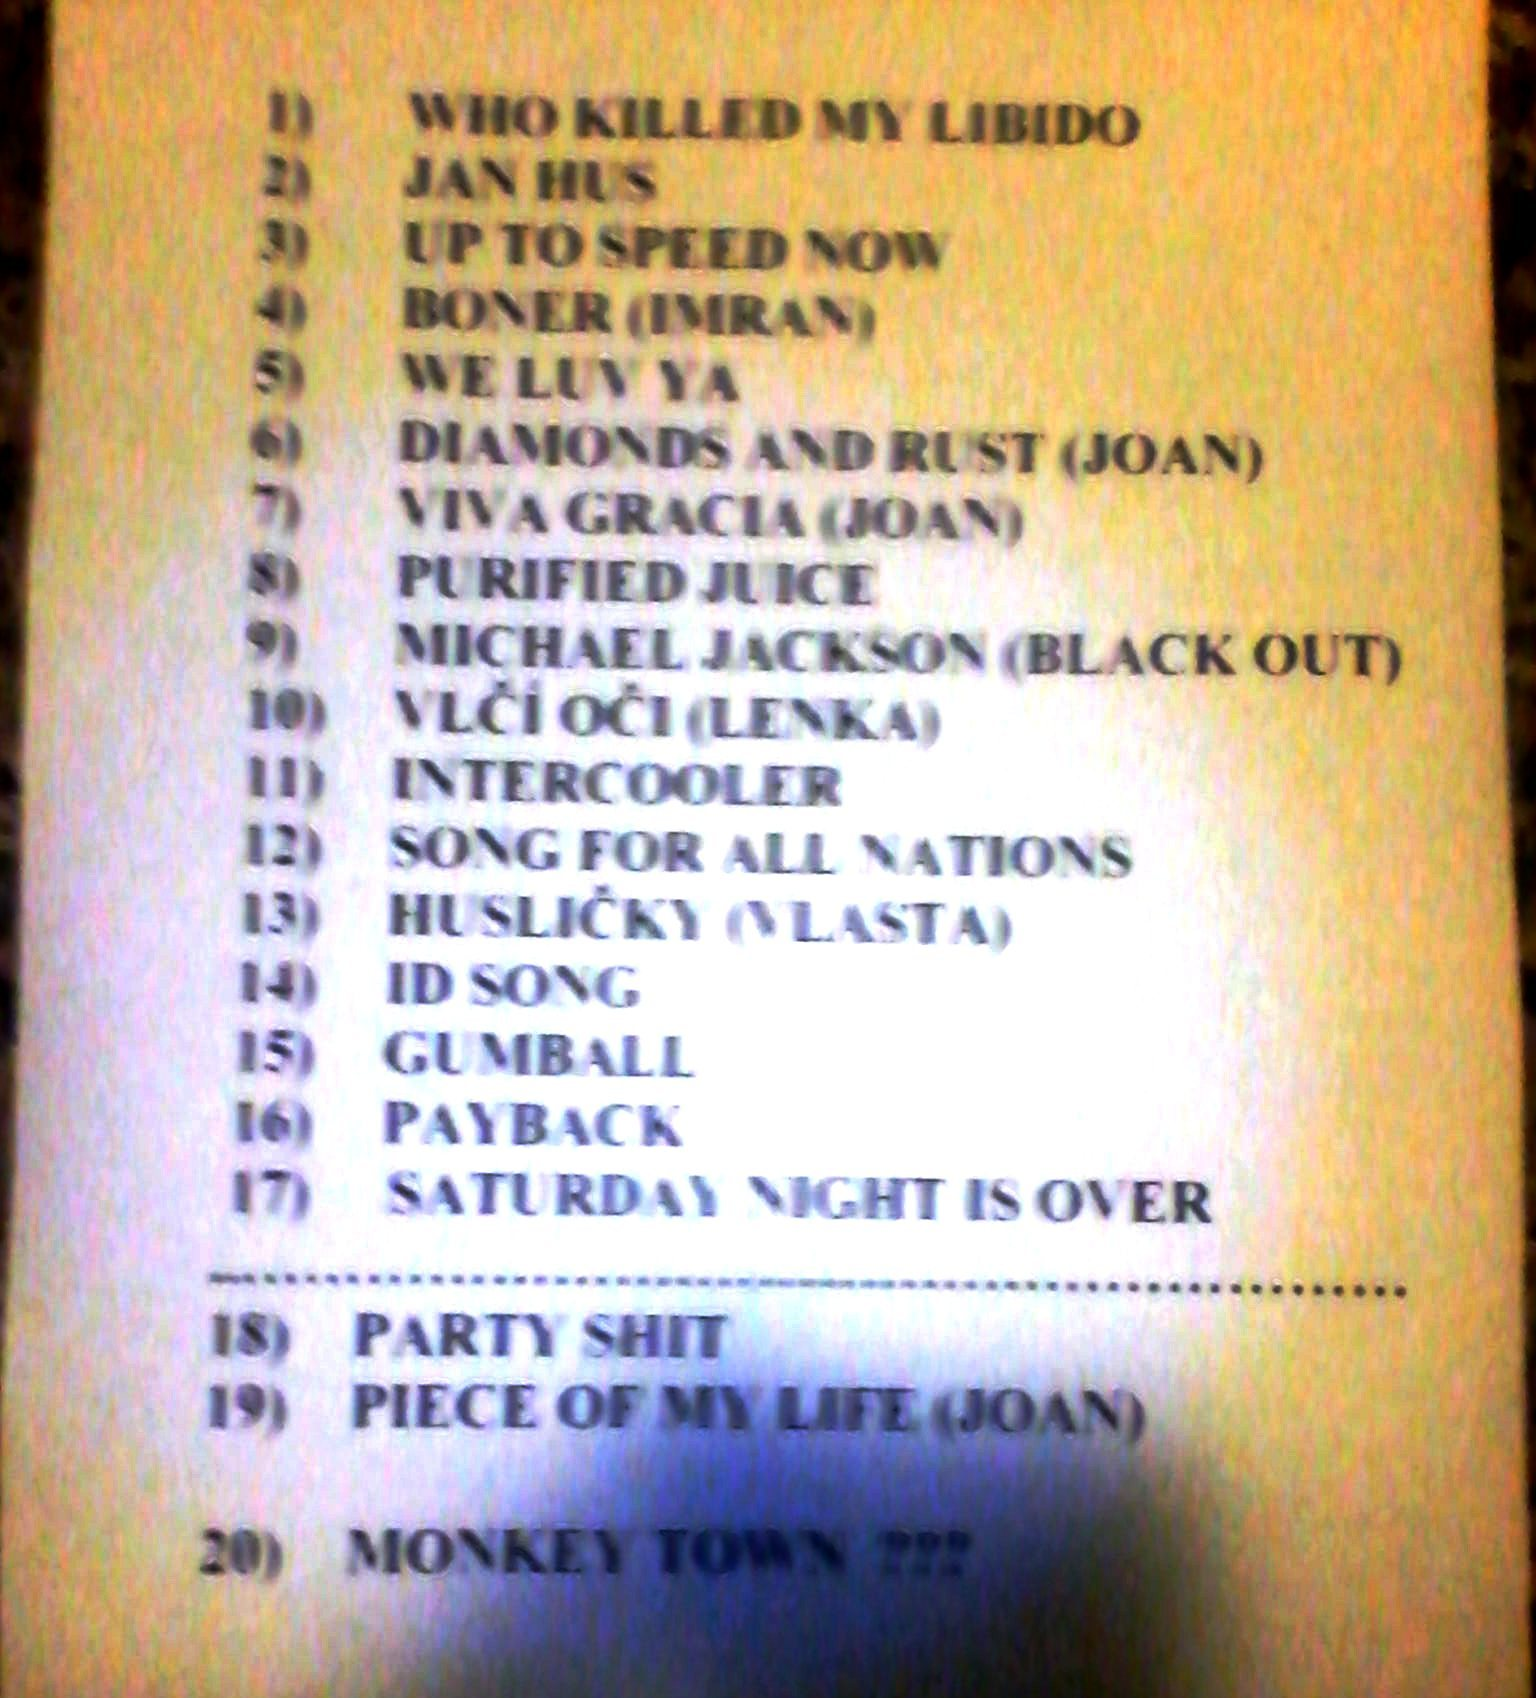 monkey business 20.12.12. setlist